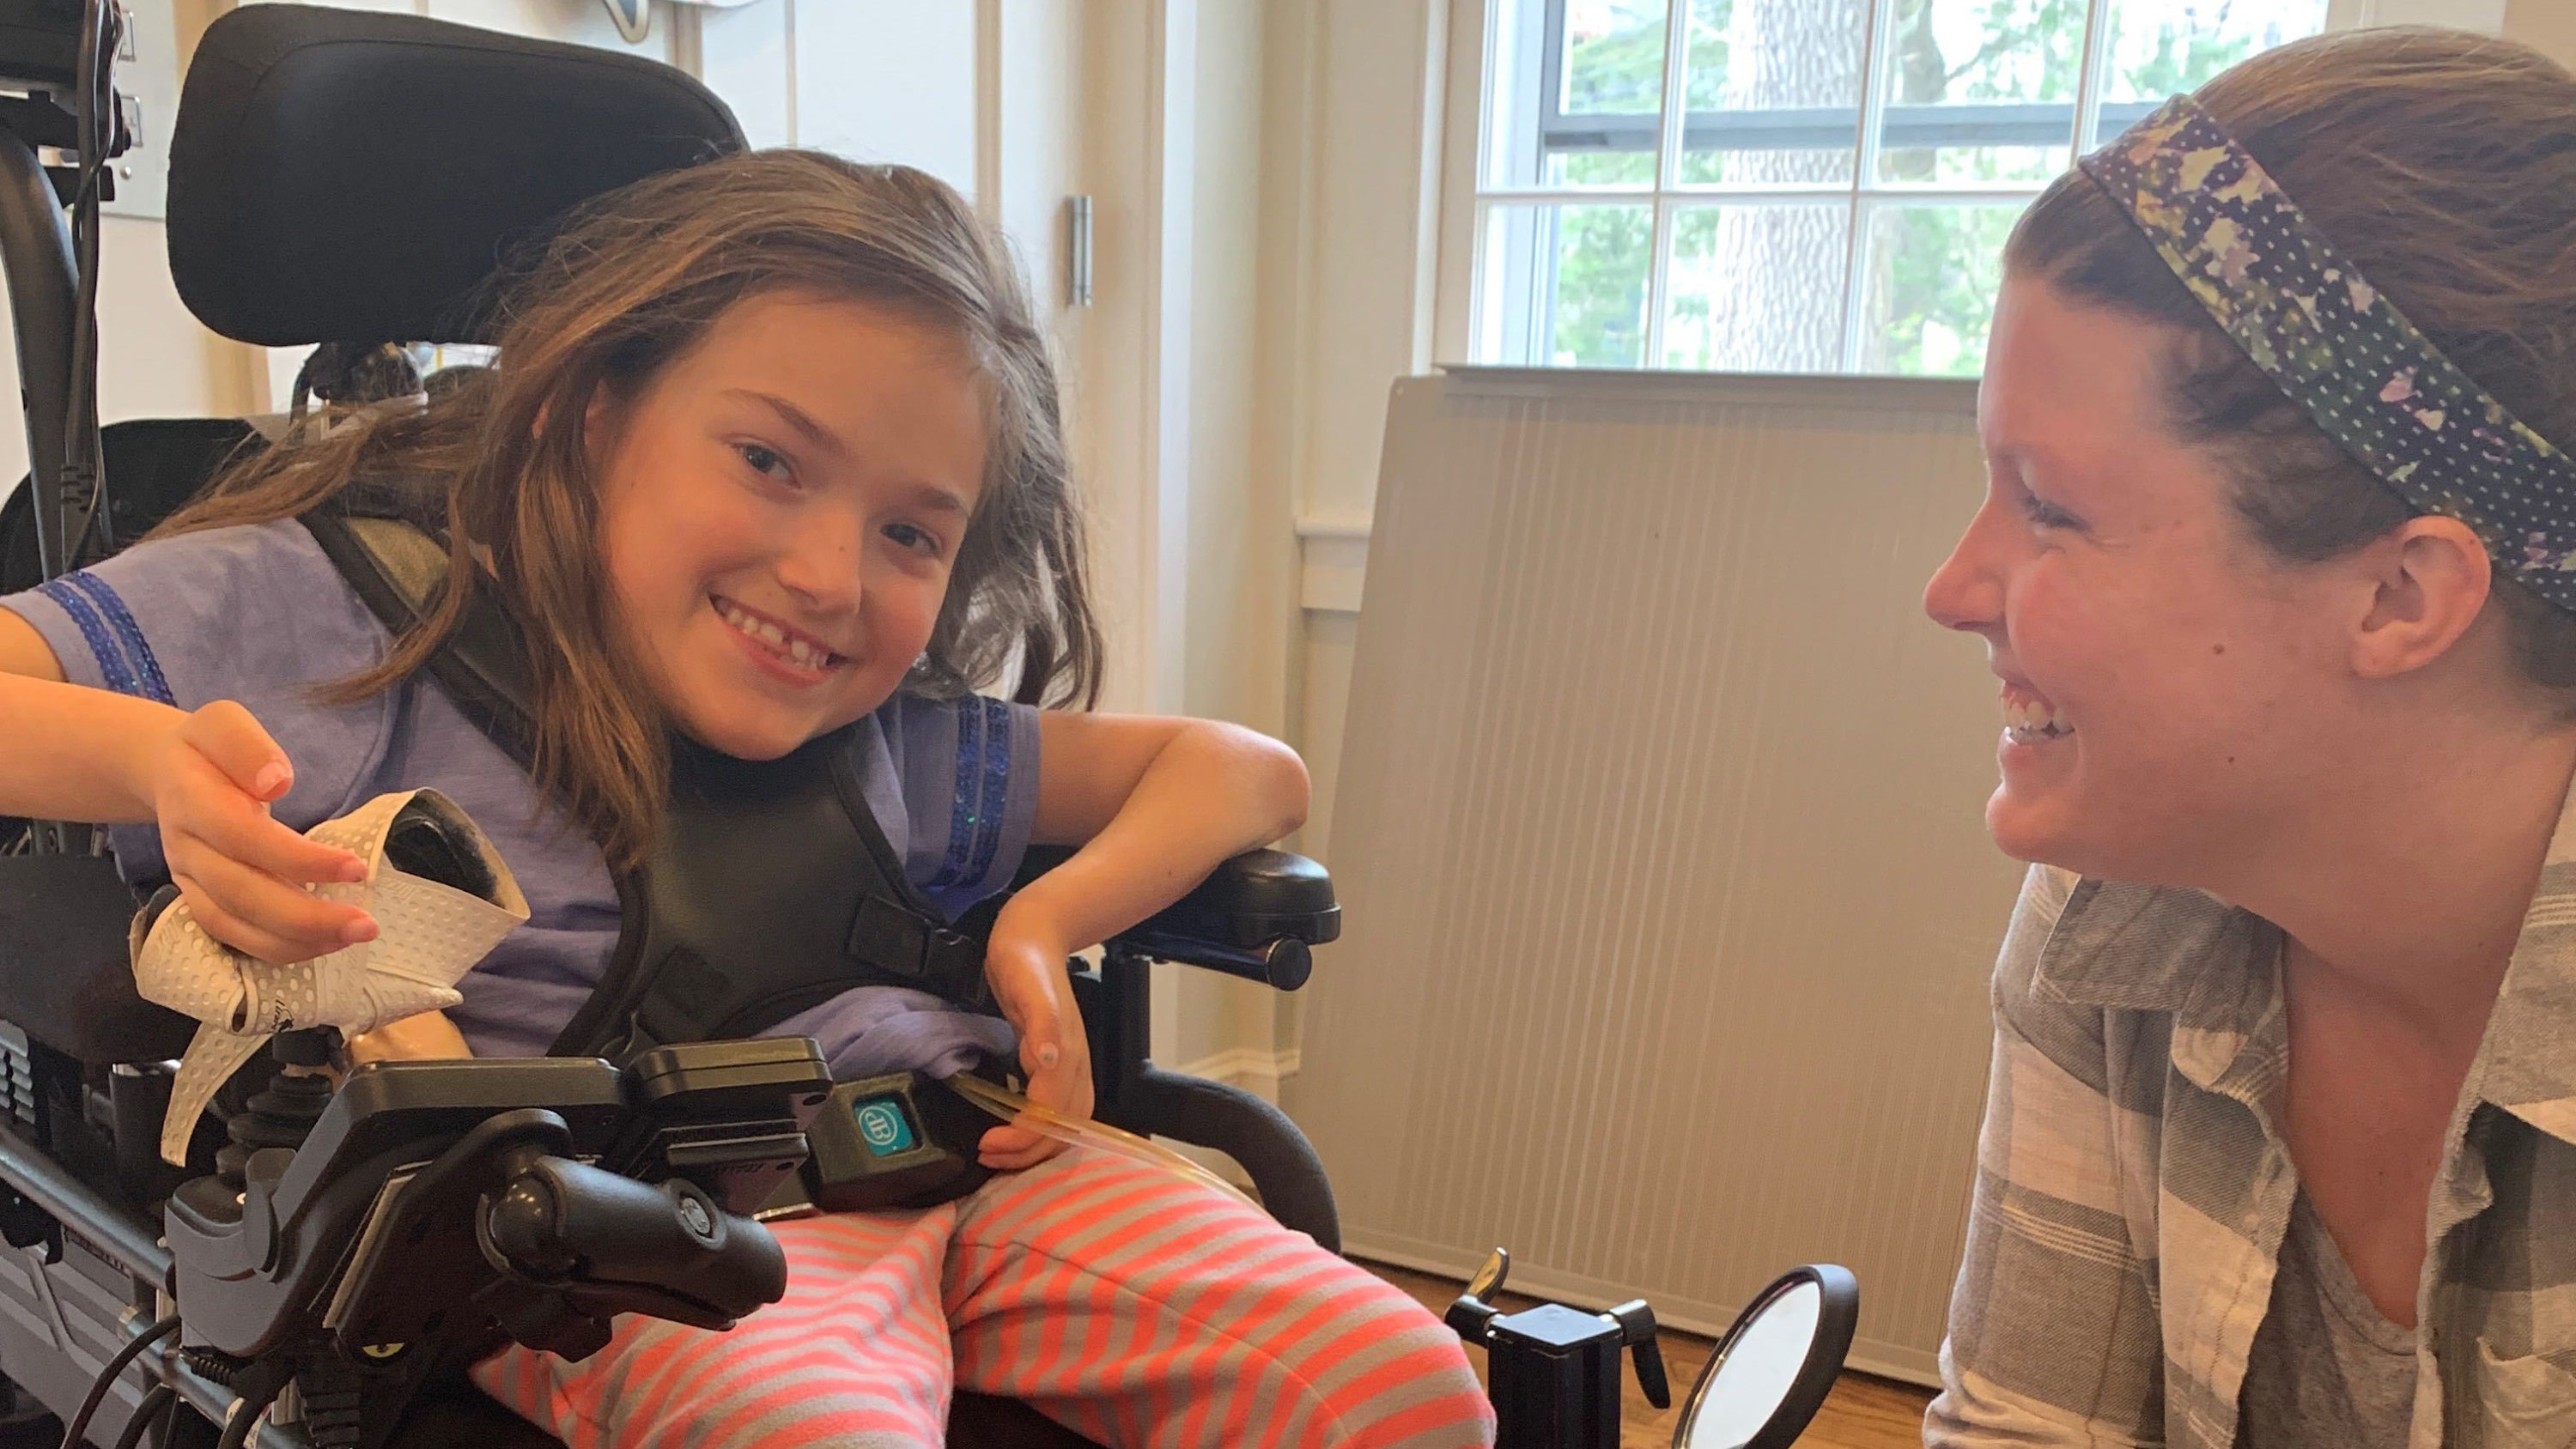 Registered Nurse Kristin Hanifin helps care for 8-year-old Harper Oates in Harper's Brookline home. (Photo courtesy Dawn Oates)